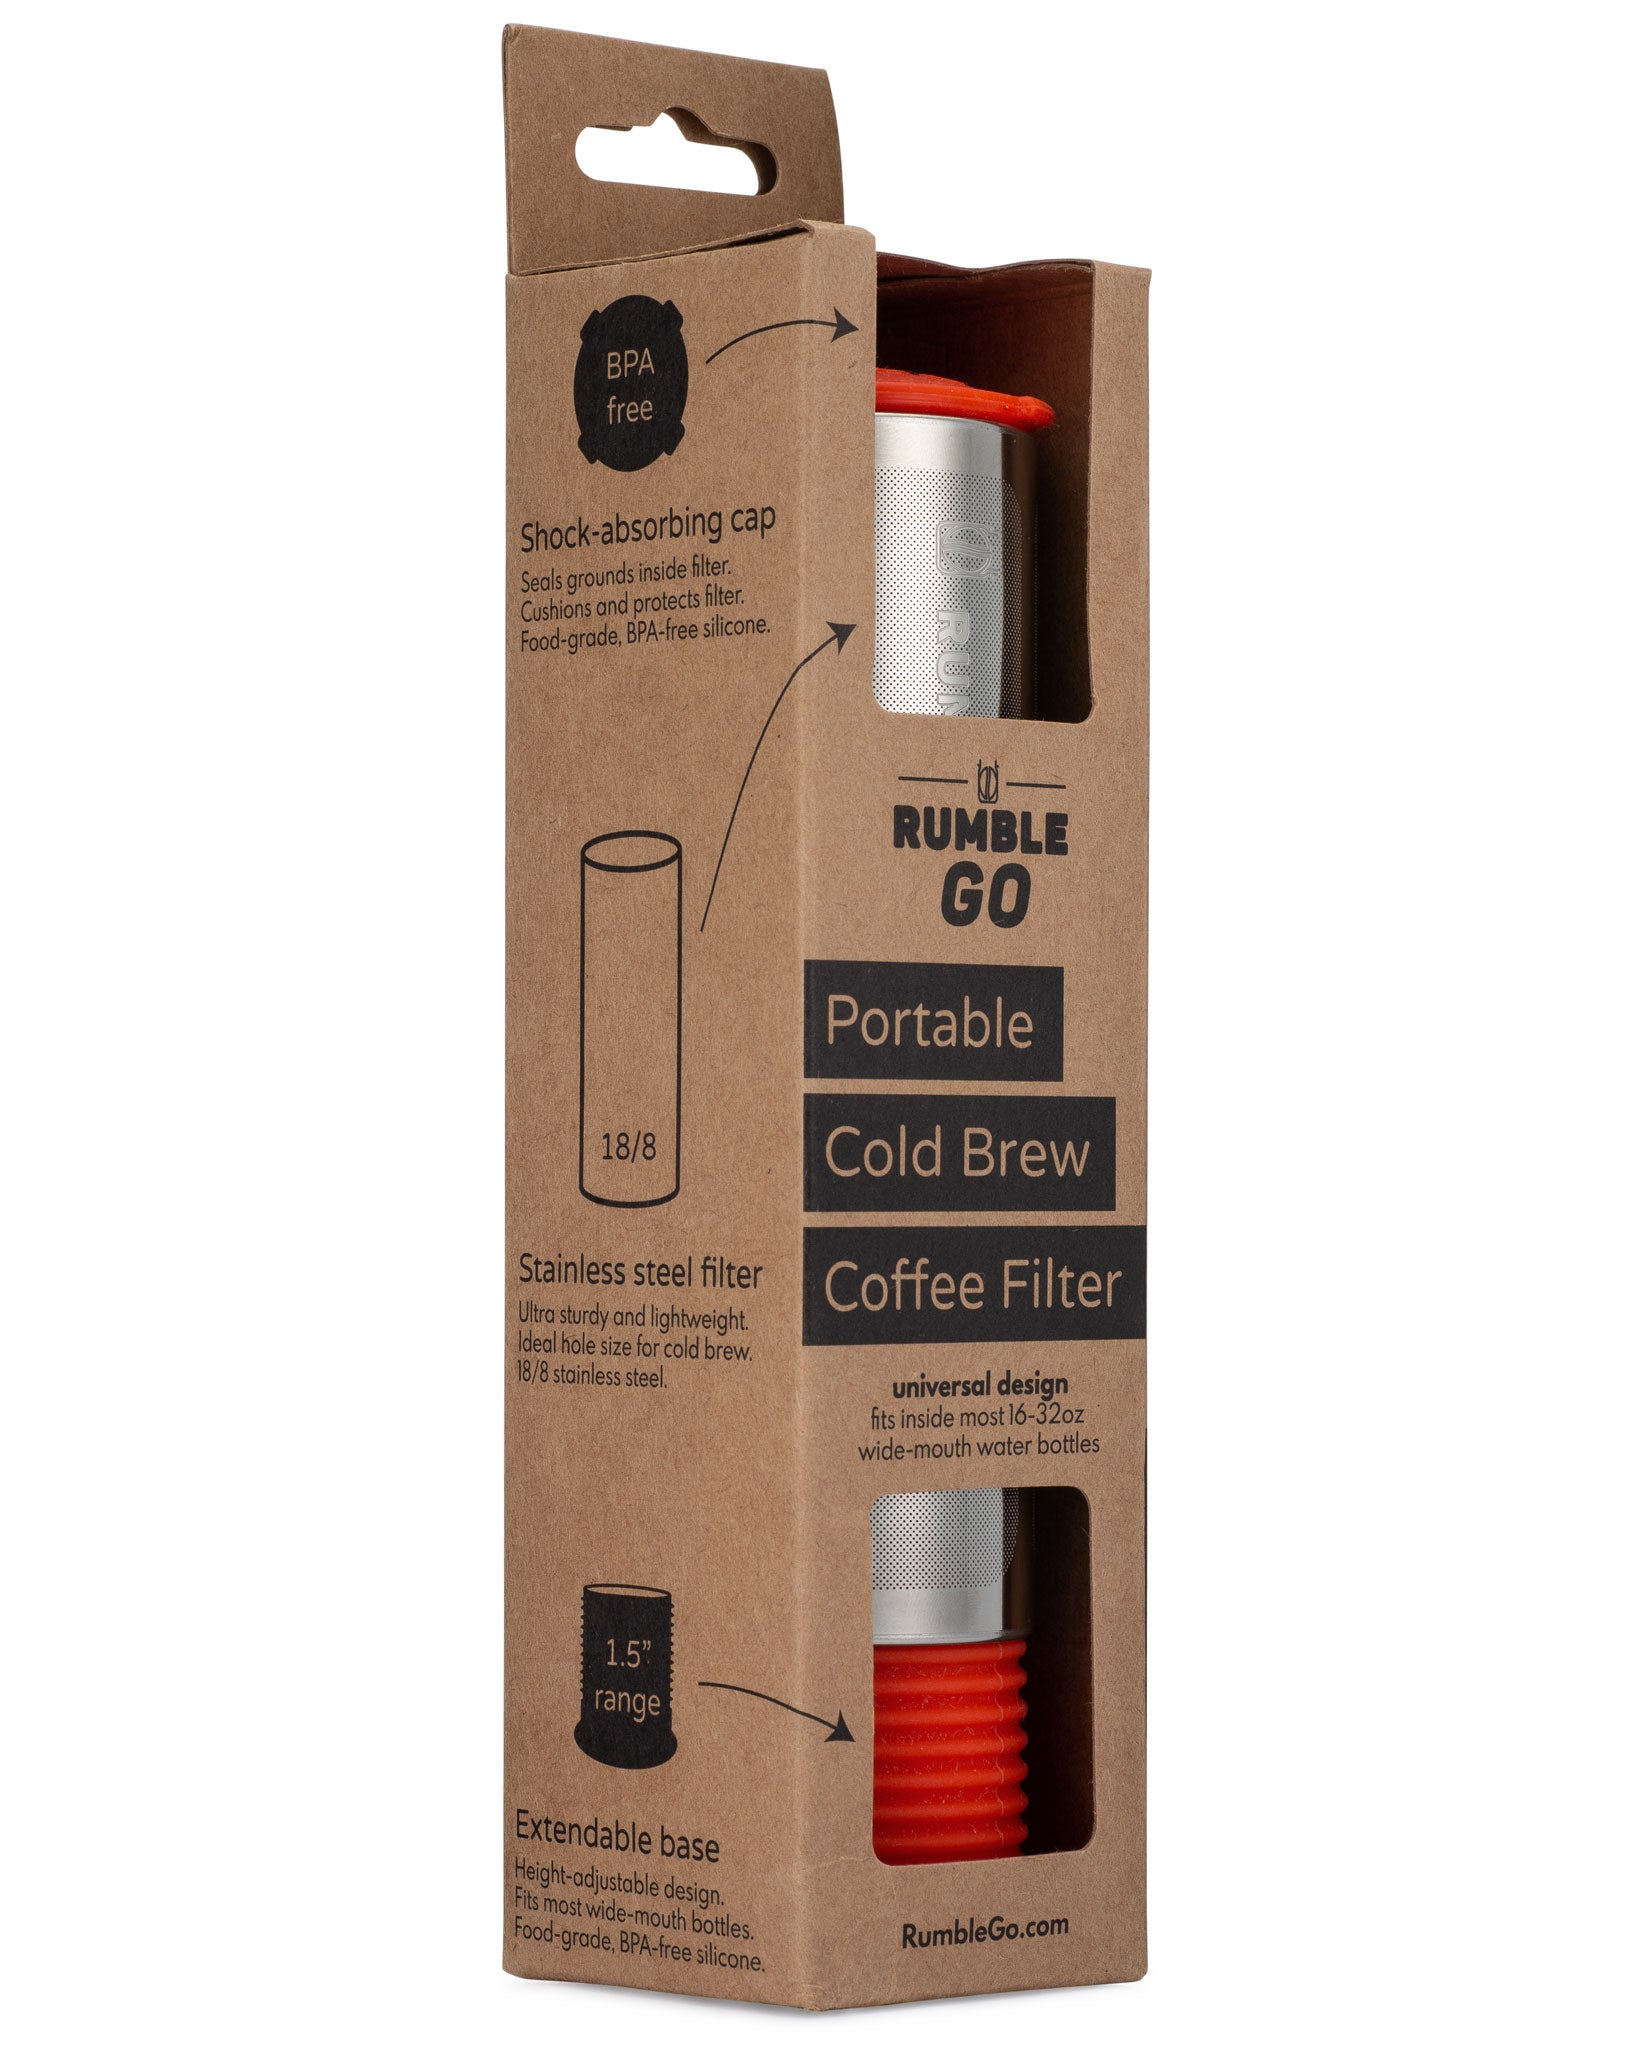 Rumble Go cold brew filter in its packaging